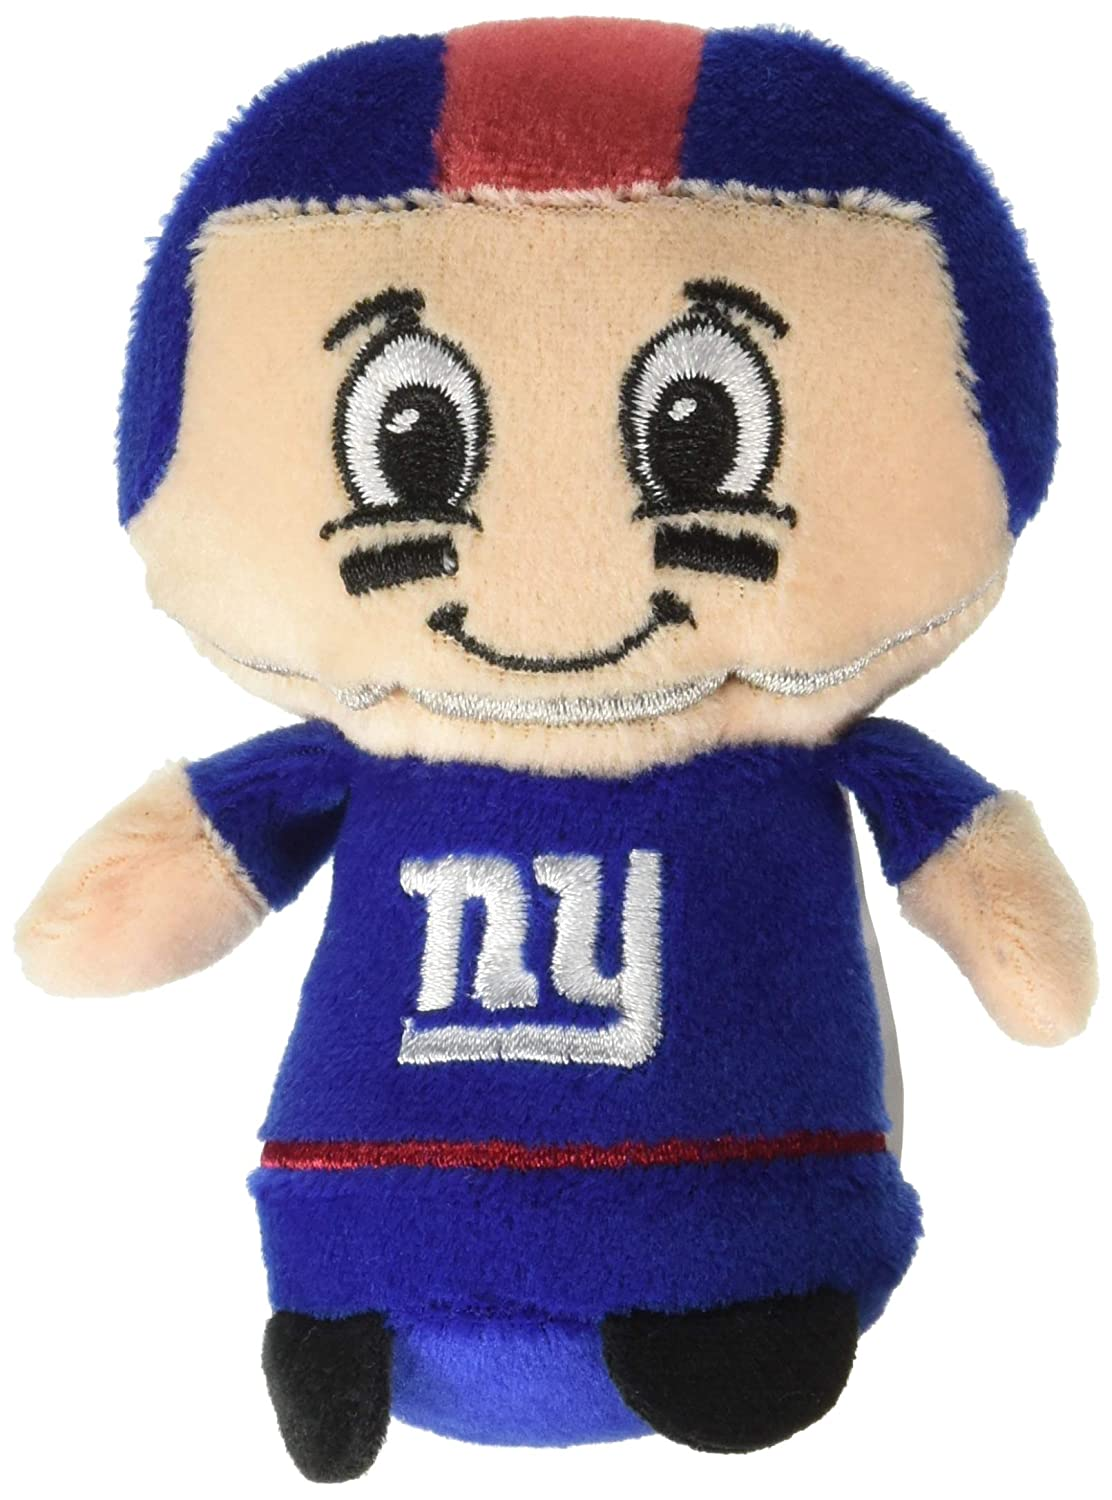 Player /& Cheerleader New York Giants Assorted Teamie Beanies